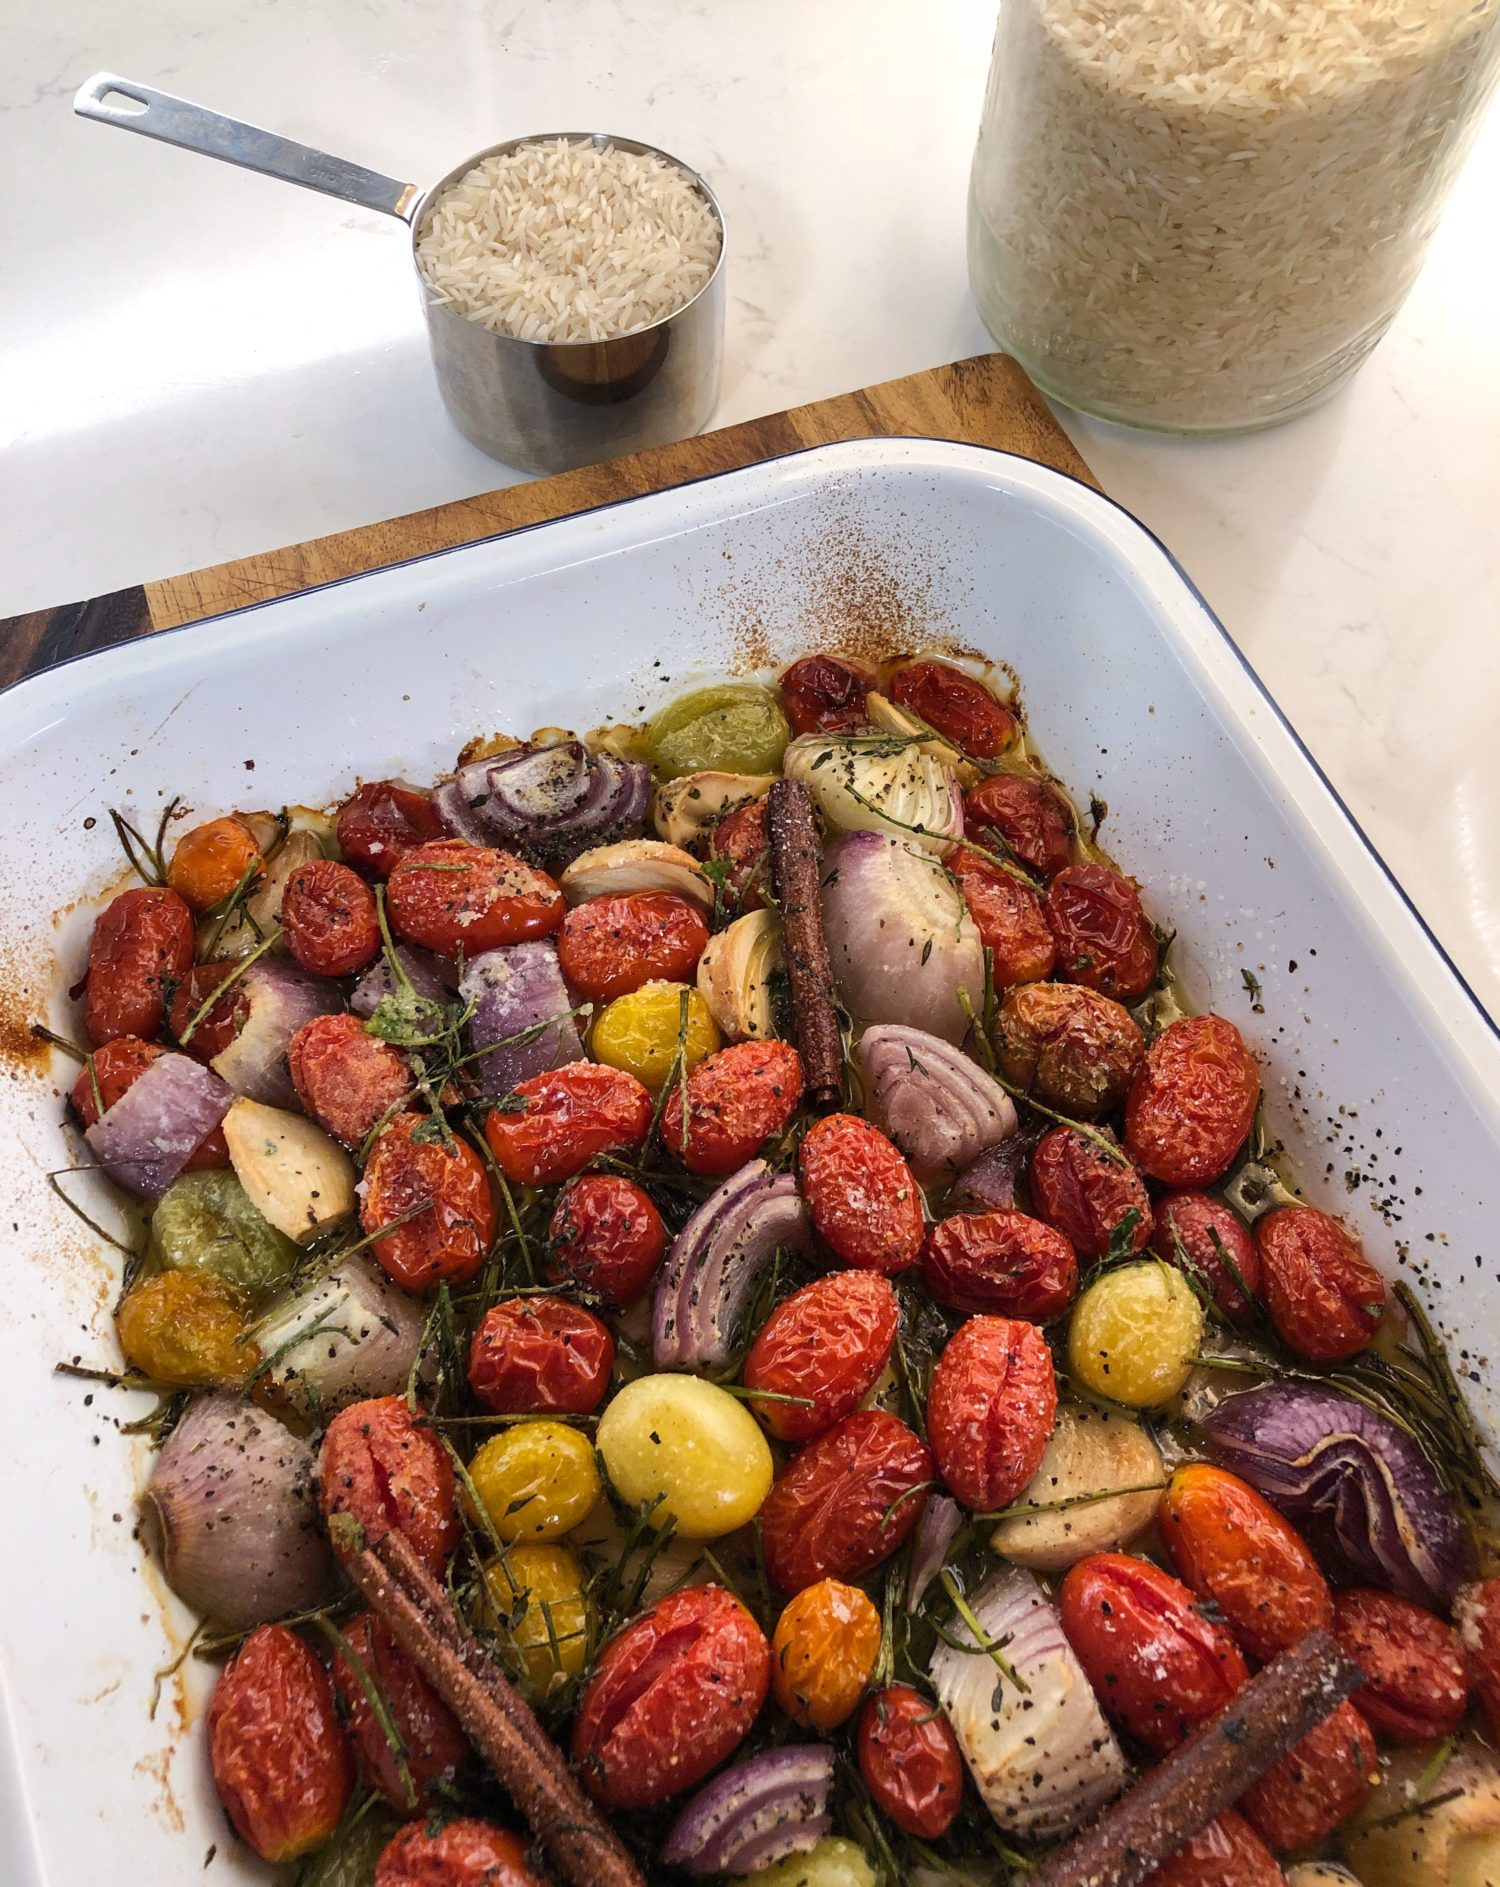 Ottolenghi Tomato and Garlic Confit Rice from Simple